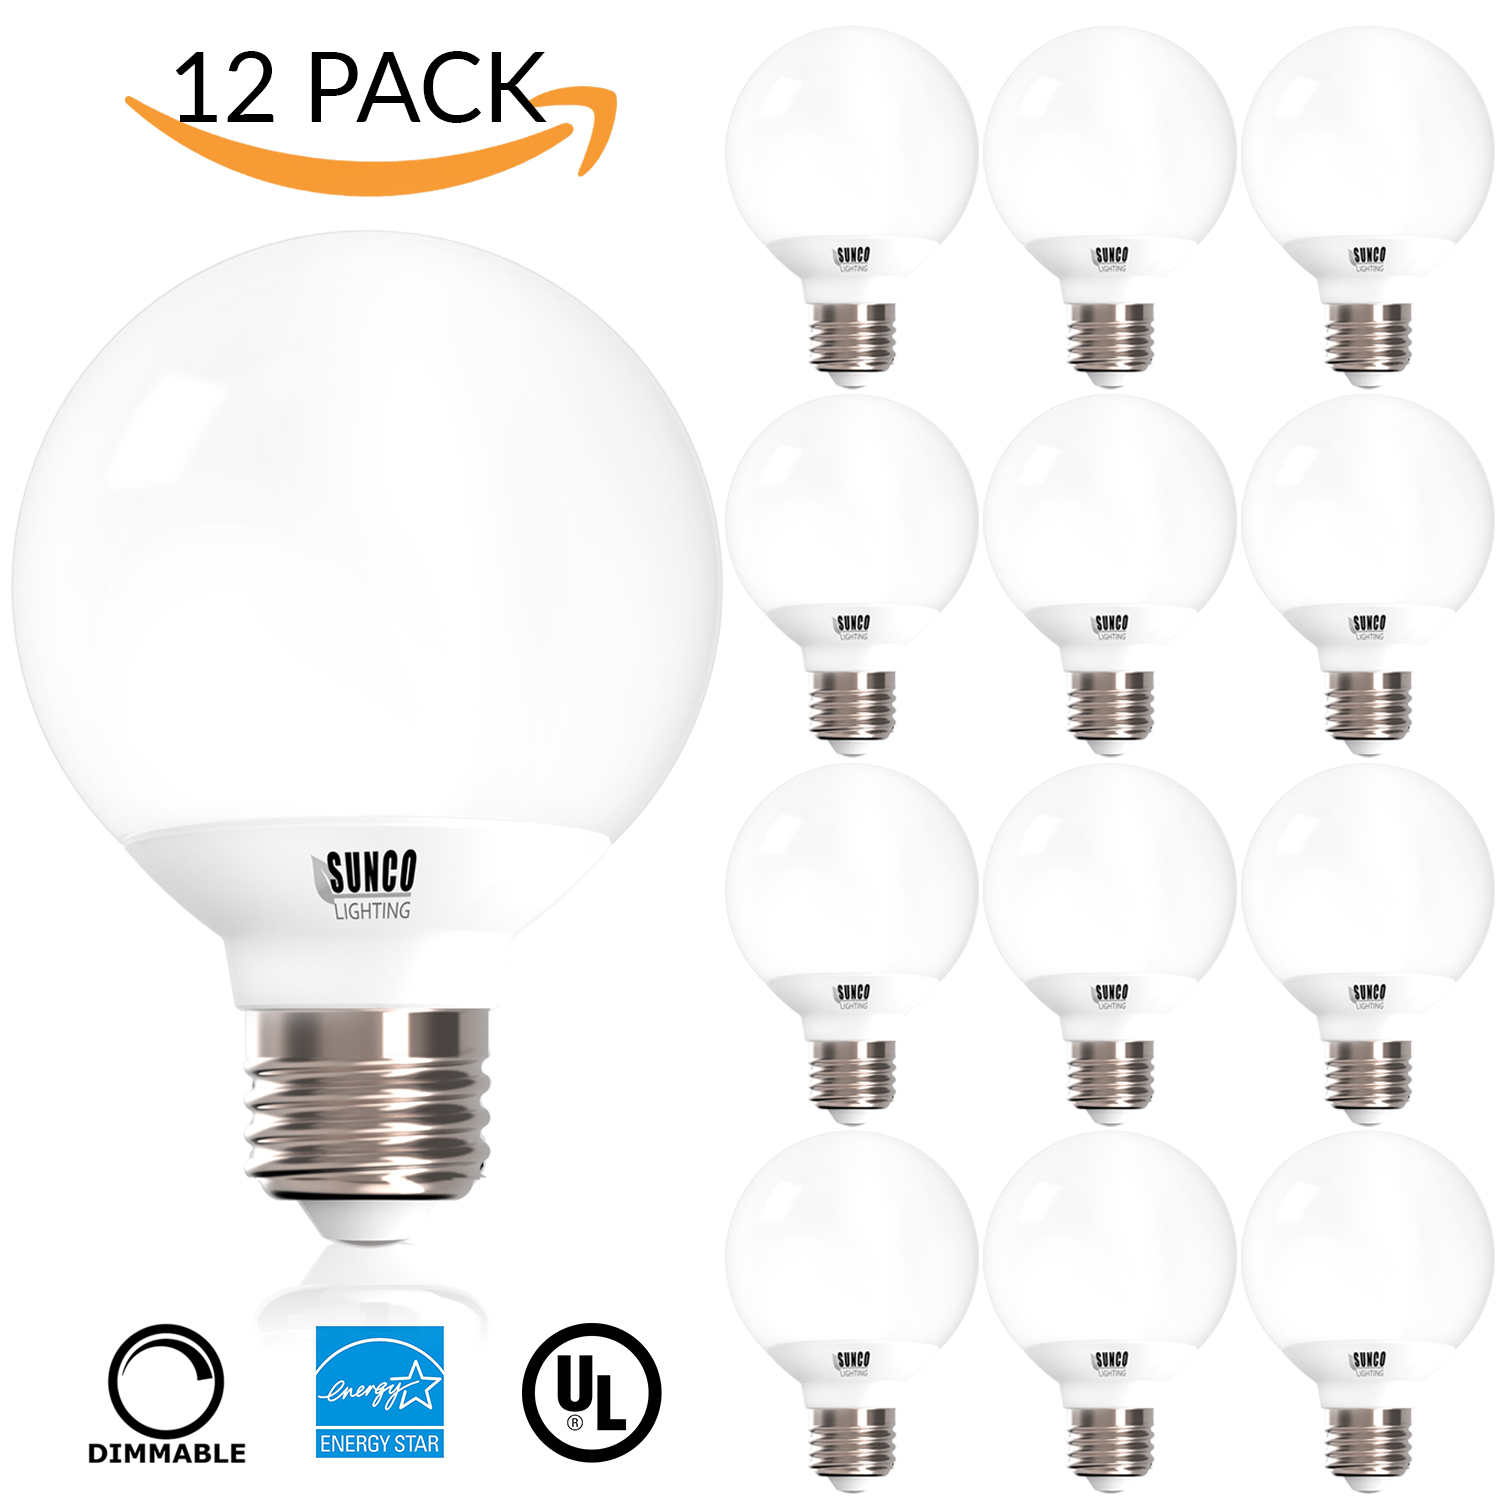 12 PACK - UL & ENERGY STAR LISTED - 6W Dimmable G25 LED Bulb, (= 40W) Vanity Light Bulb, Soft White 2700K, Medium E26 Screw, Omnidirectional Globe Bulb for Bath, Pendant, Dressing Room & Decorative